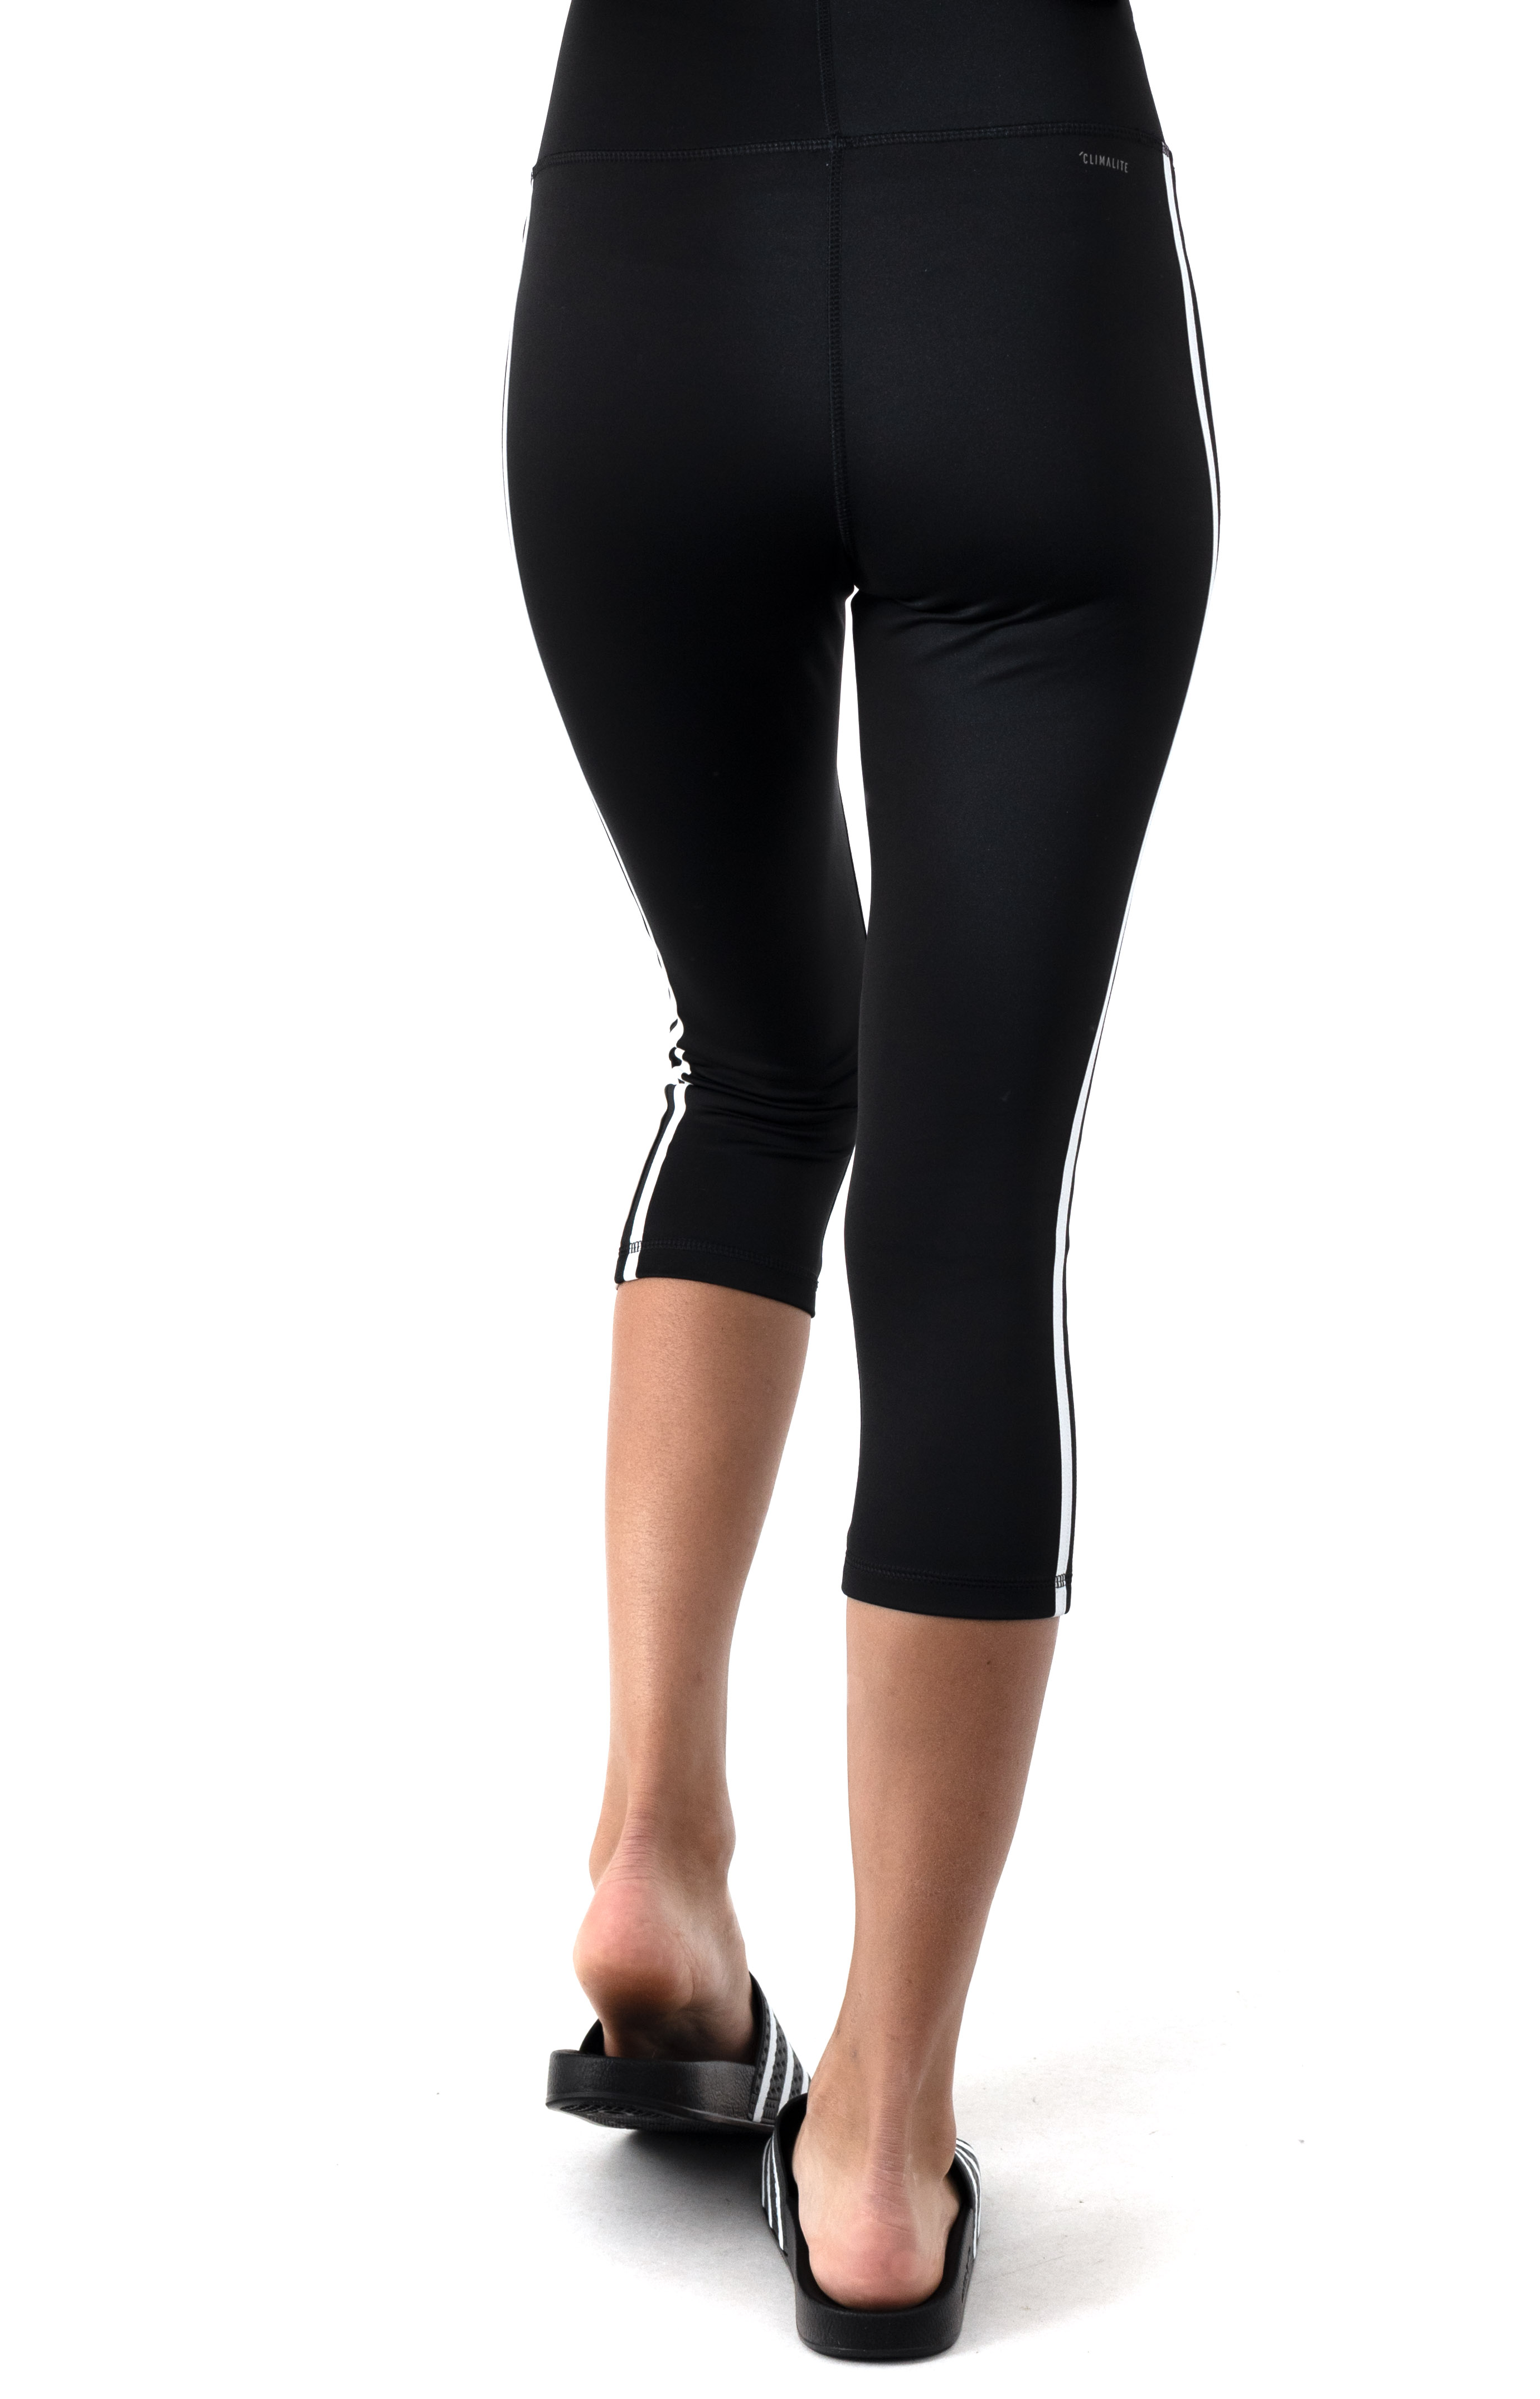 Design 2 Move 3 Stripes 3/4 Tights - Black/White  3